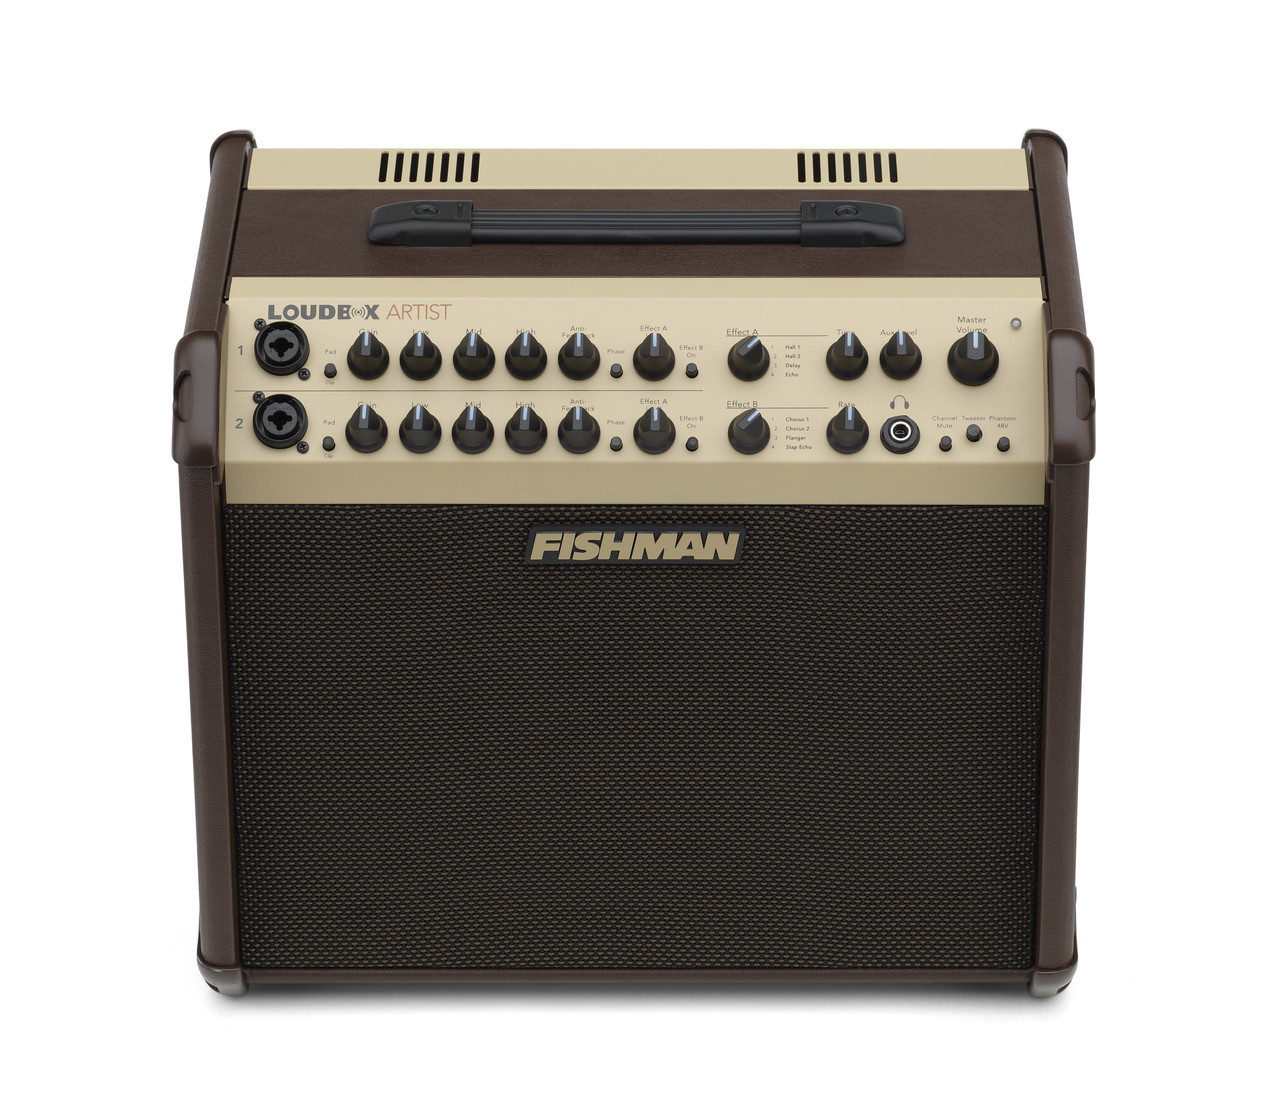 Fishman Loudbox Artist 120-watt Acoustic Guitar Amplifier - XLR DI Output - View 7